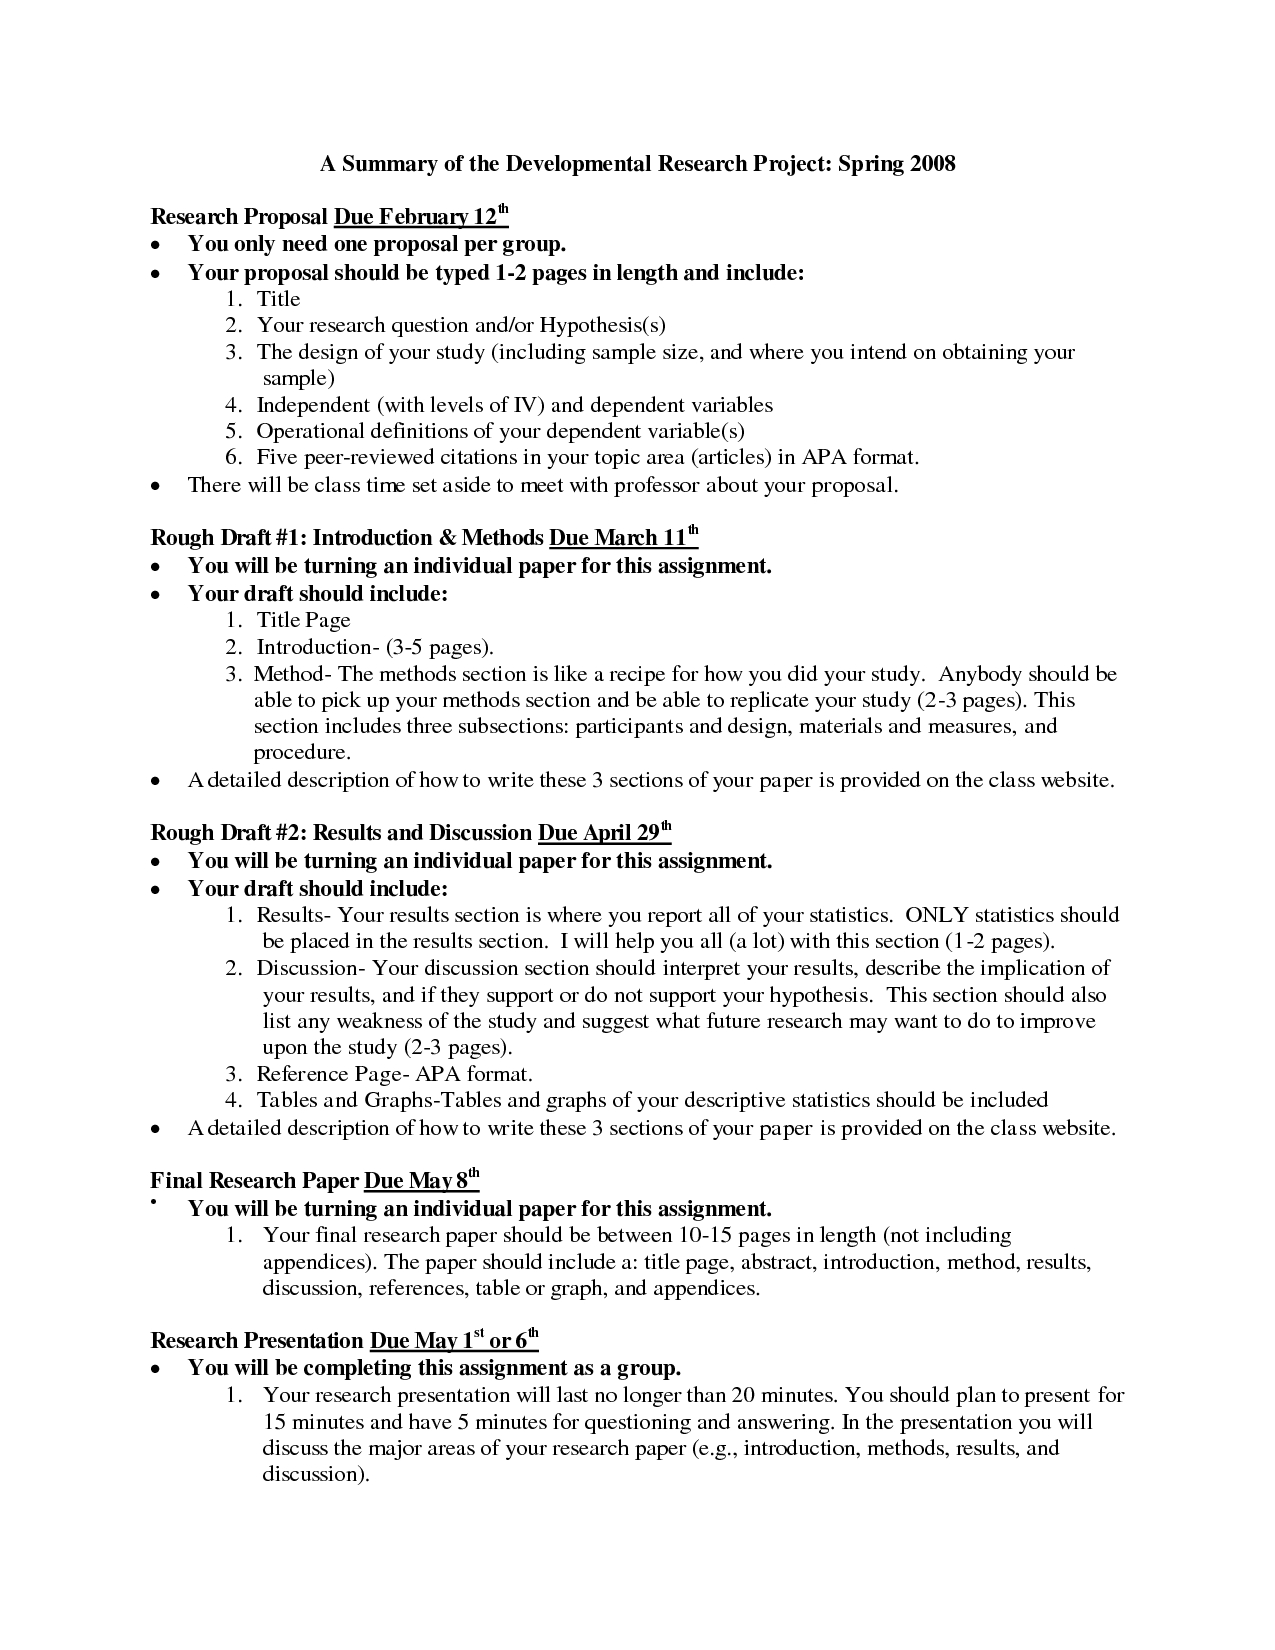 012 Good Research Paper Topic Psychology Undergraduate Resume Unique Sample Singular Best Ideas Topics History For High School Students In The Philippines Full